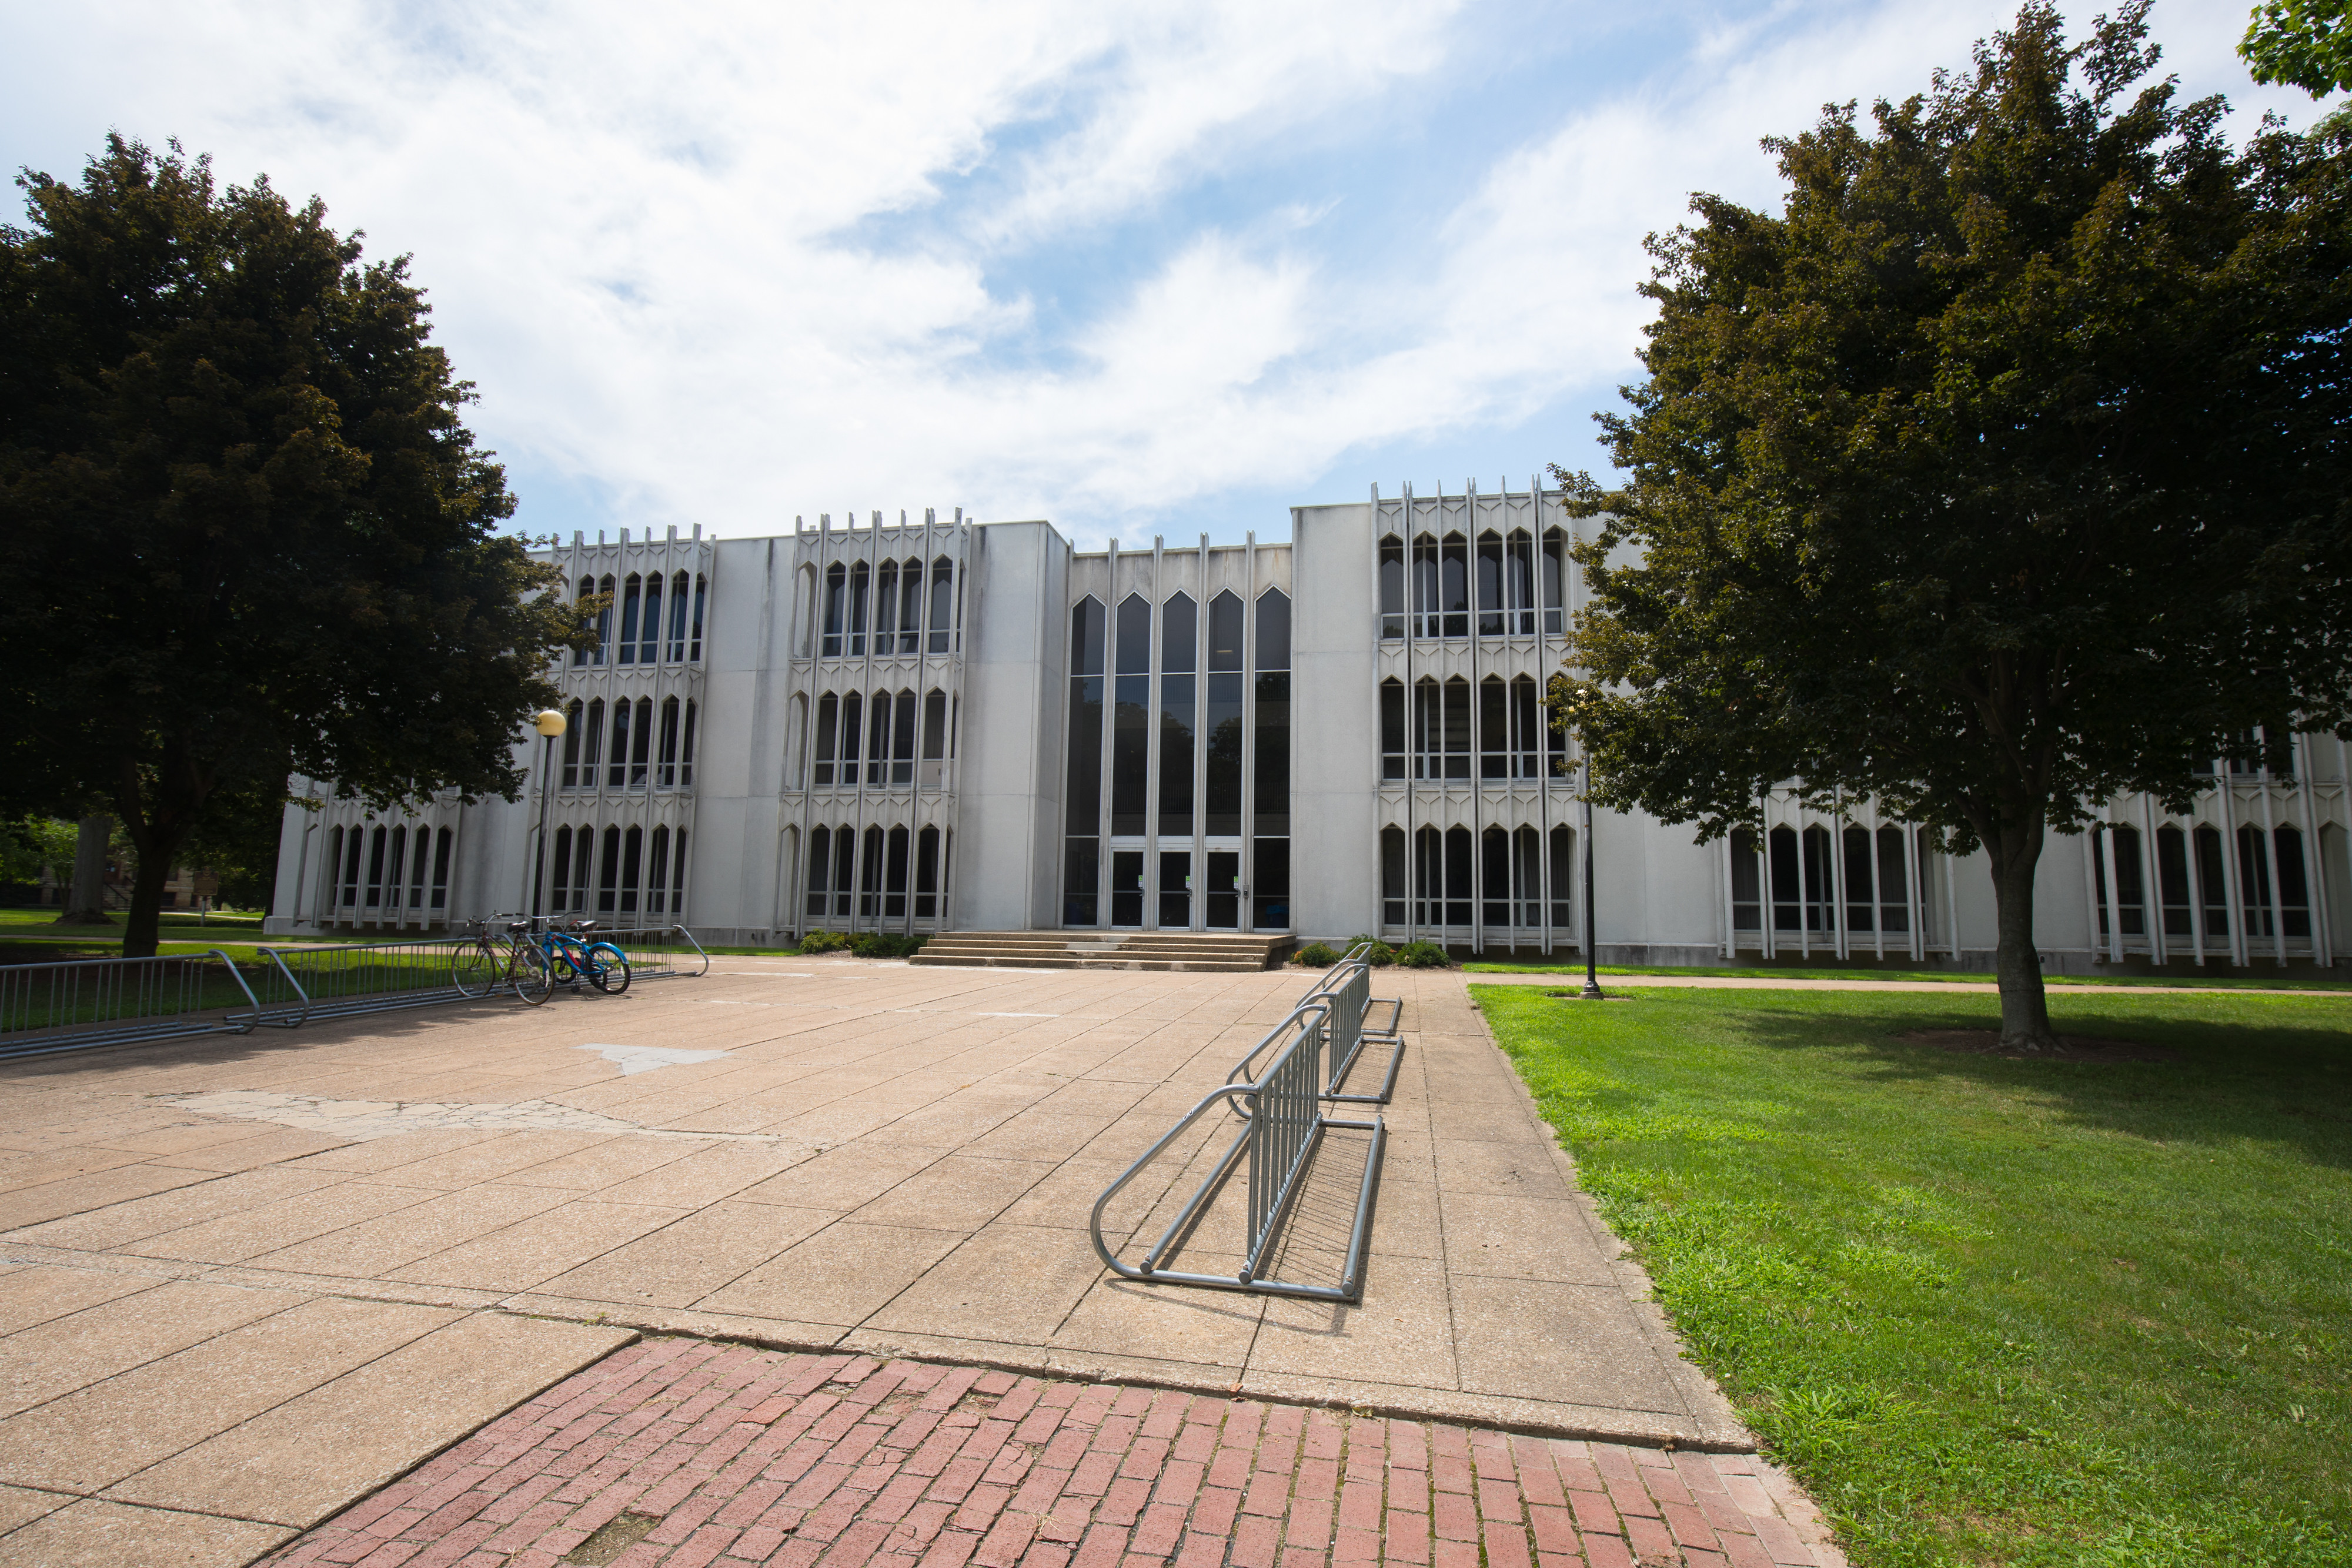 King Memorial Building is the main classroom building at Oberlin College for social sciences, humanities, math, and computer science classes.